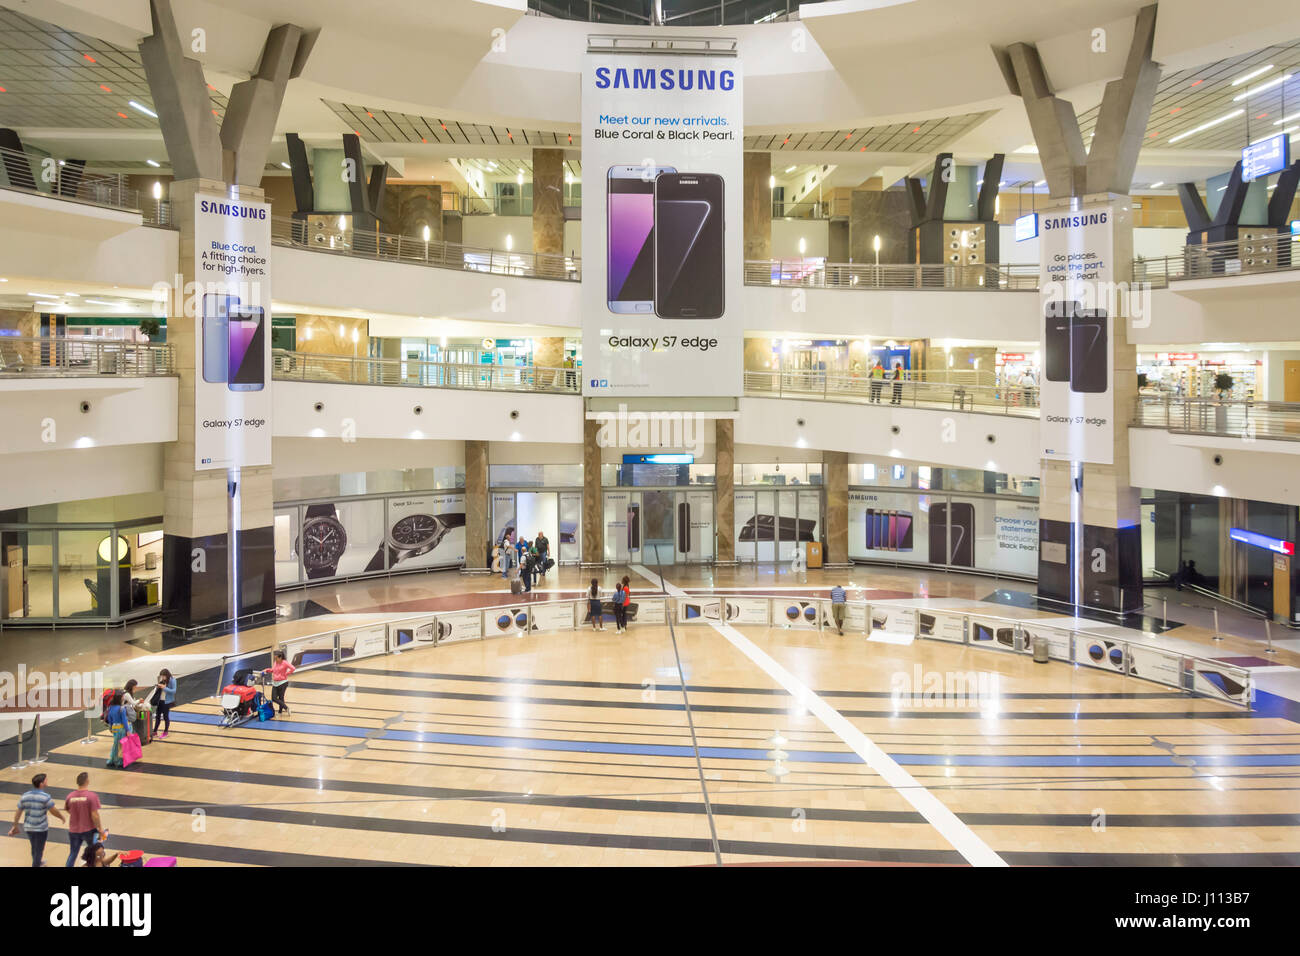 Arrivals Hall at OR Tambo International Airport, Johannesburg, Gauteng Province, Republic of South Africa - Stock Image